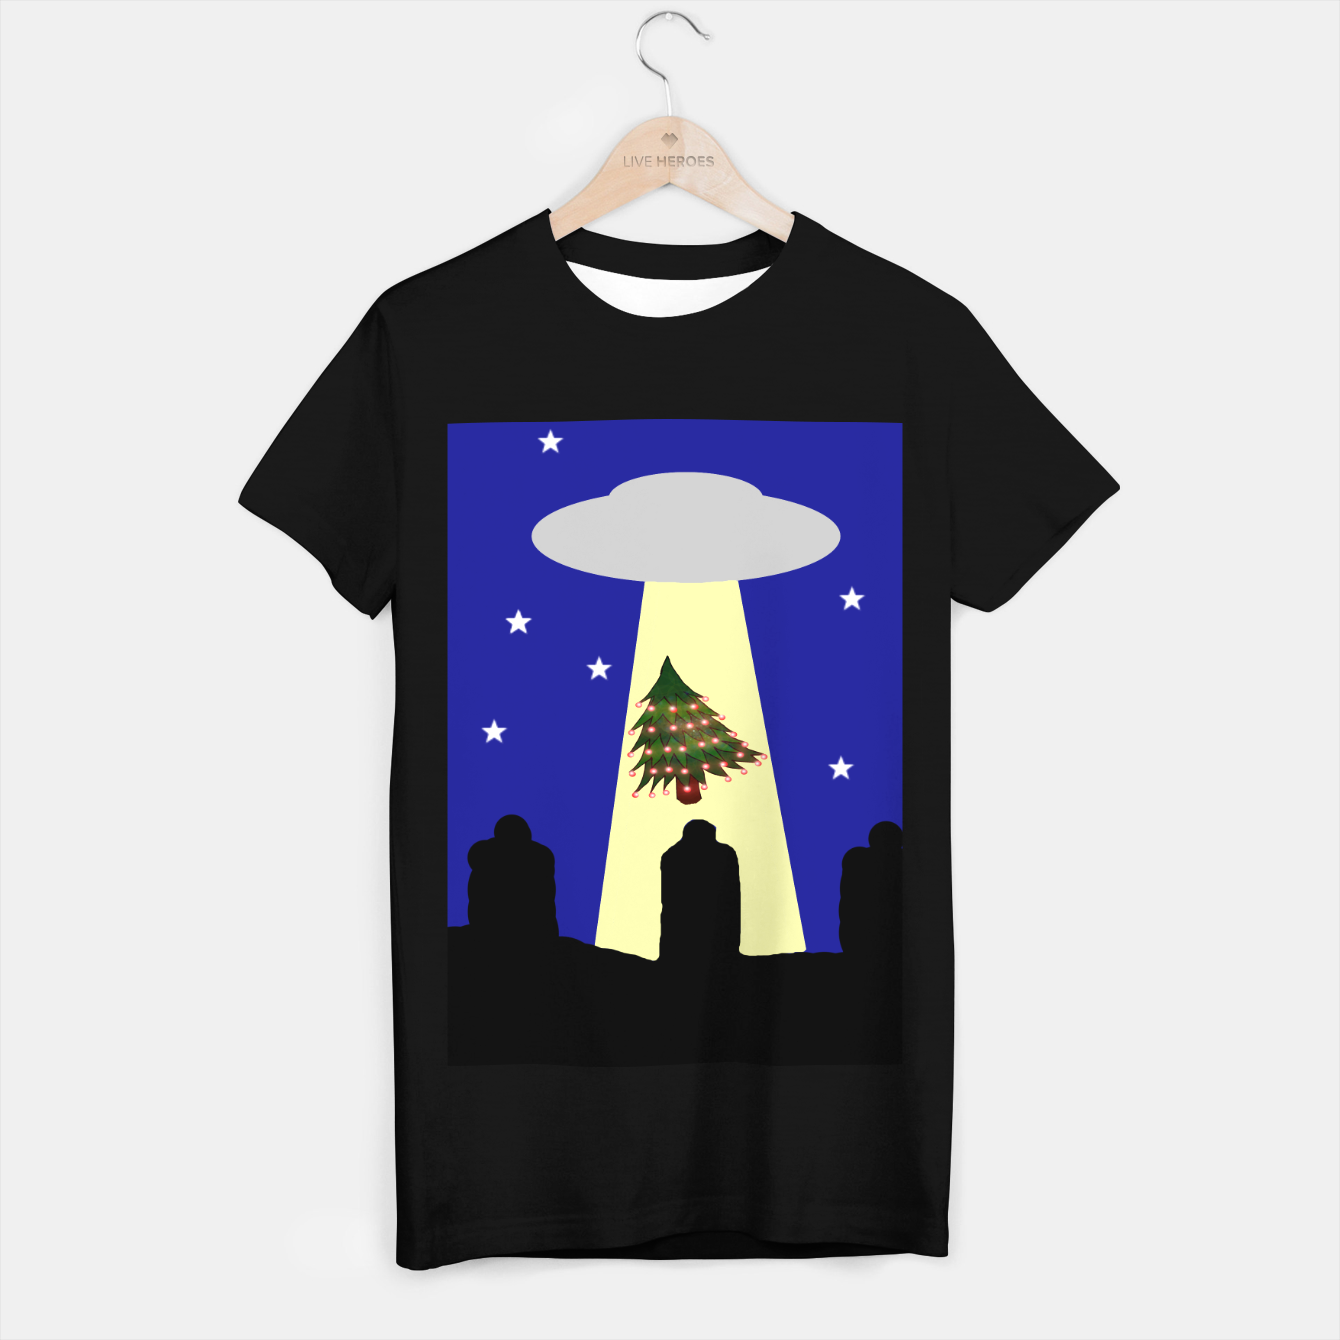 Image of The Stolen Christmas Tree t shirt - Live Heroes